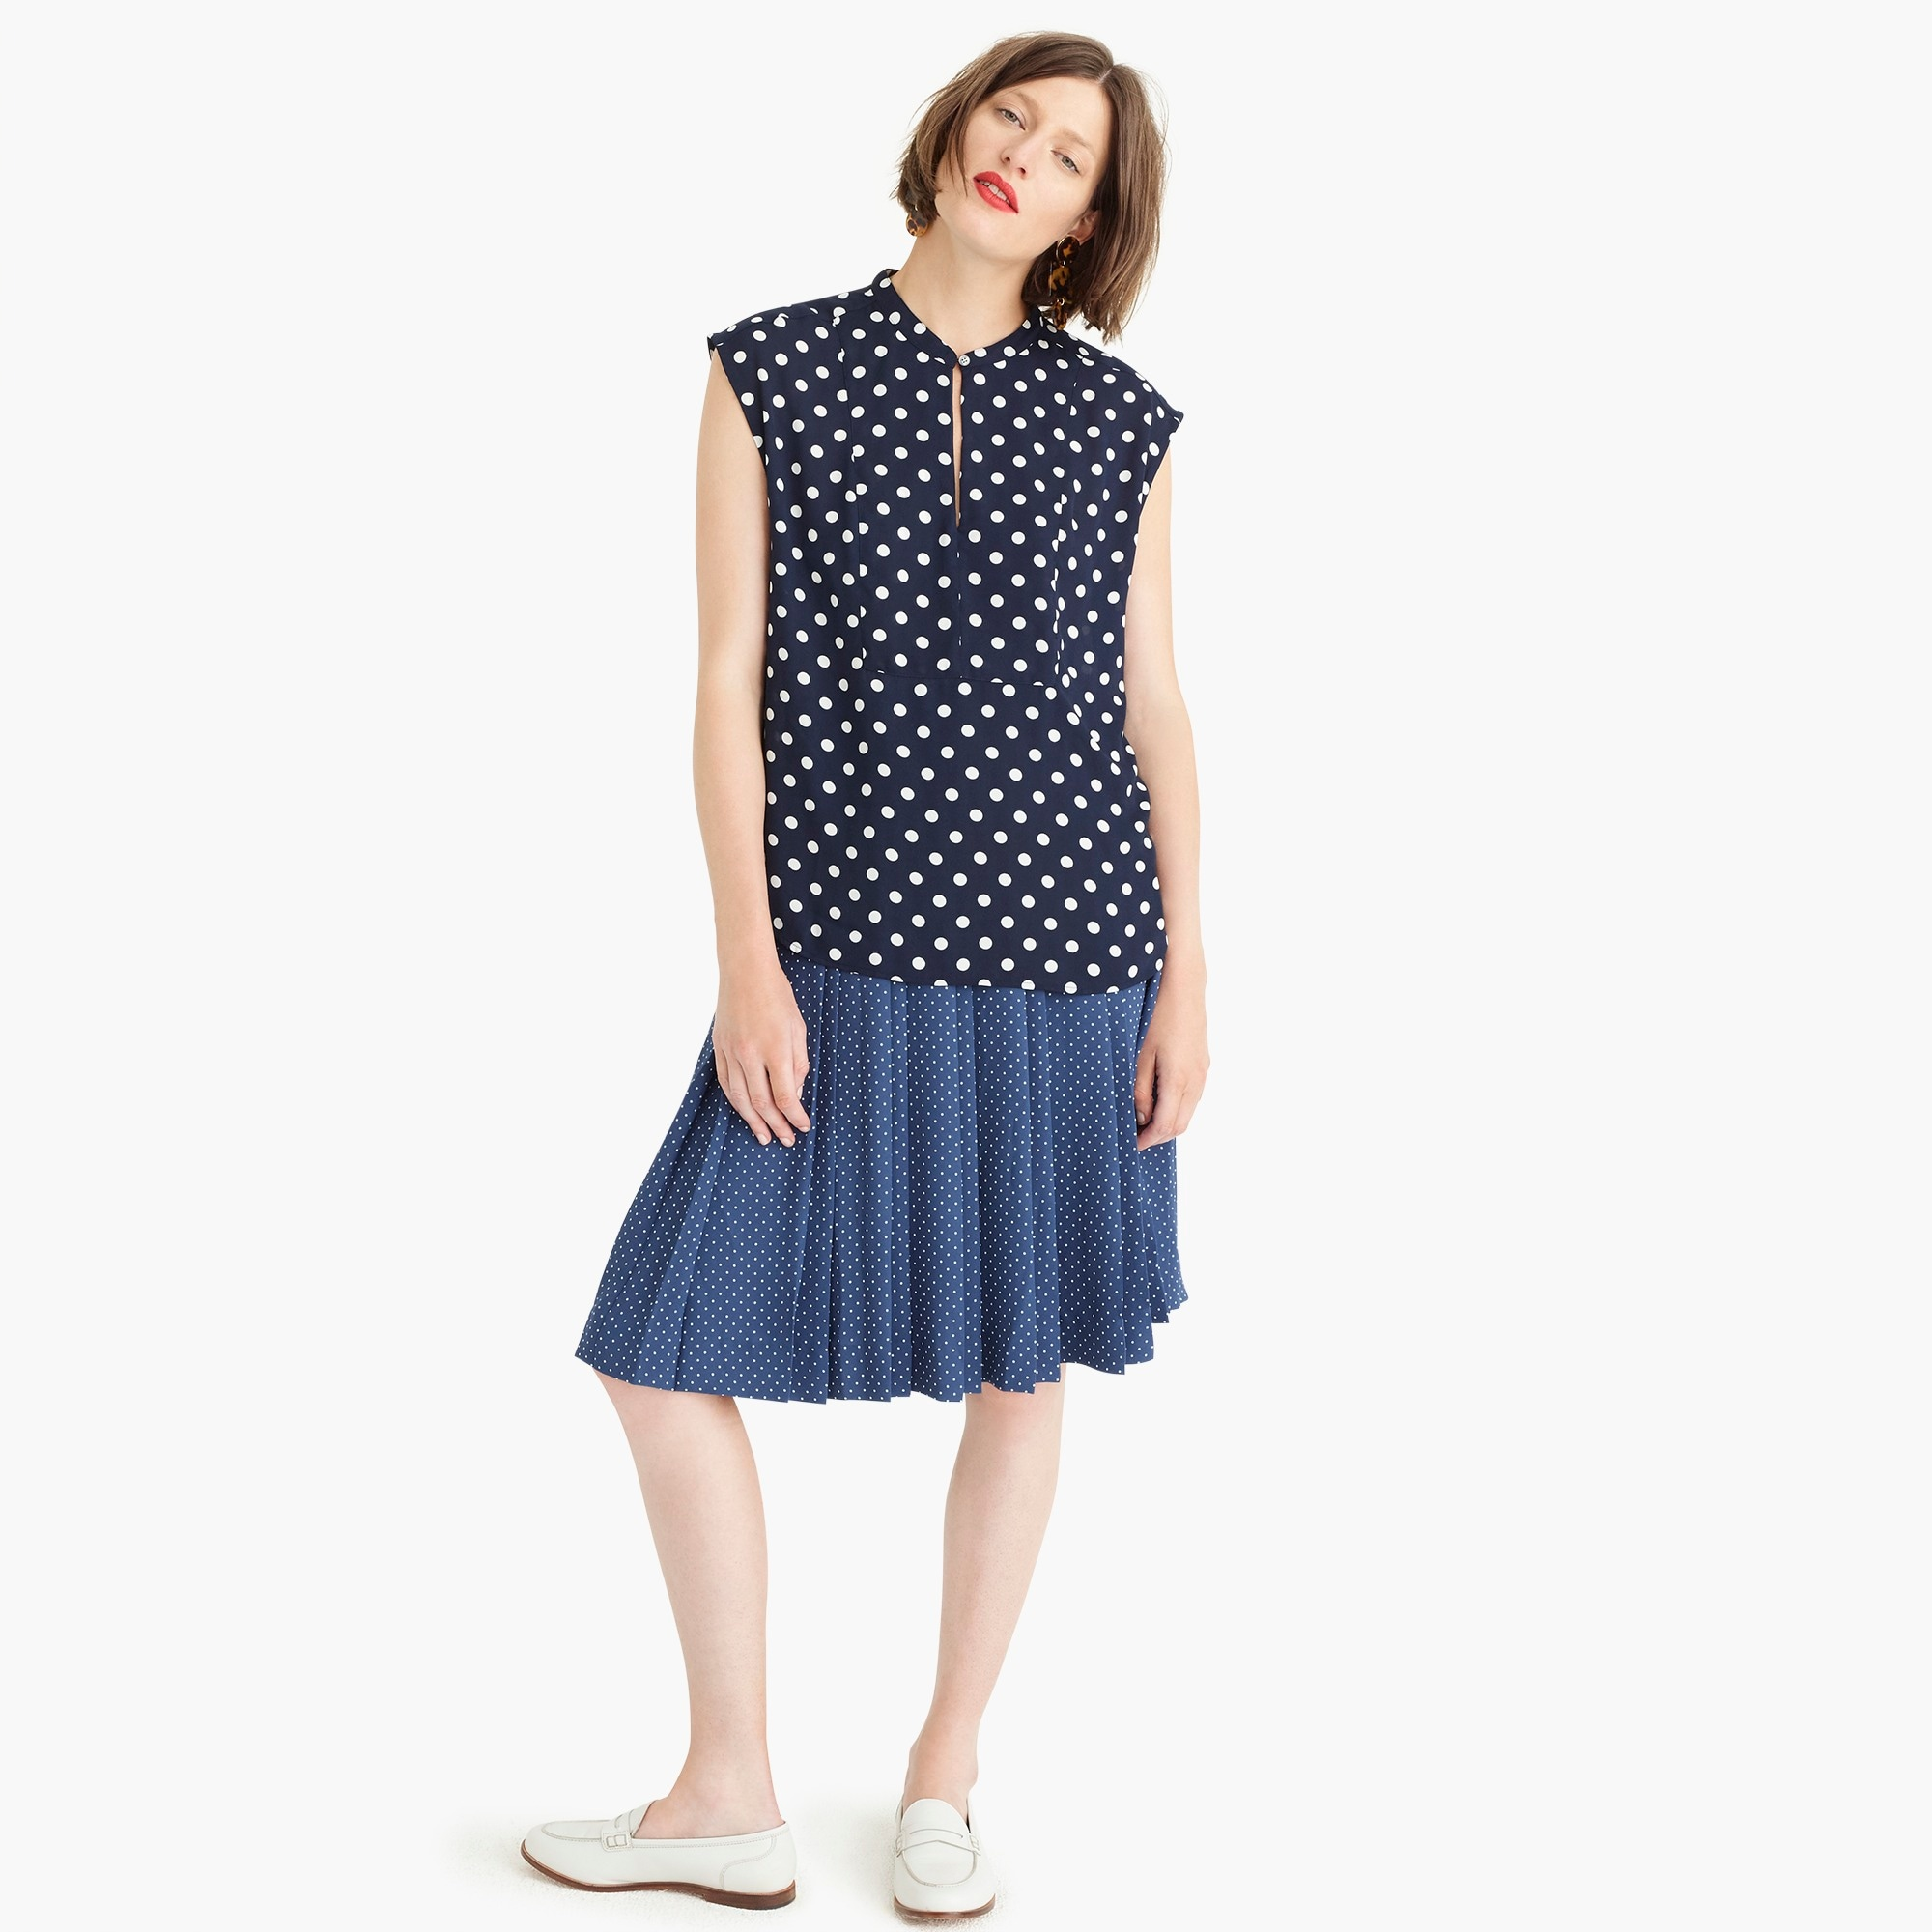 Image 3 for Petite drapey cap-sleeve top in polka dot